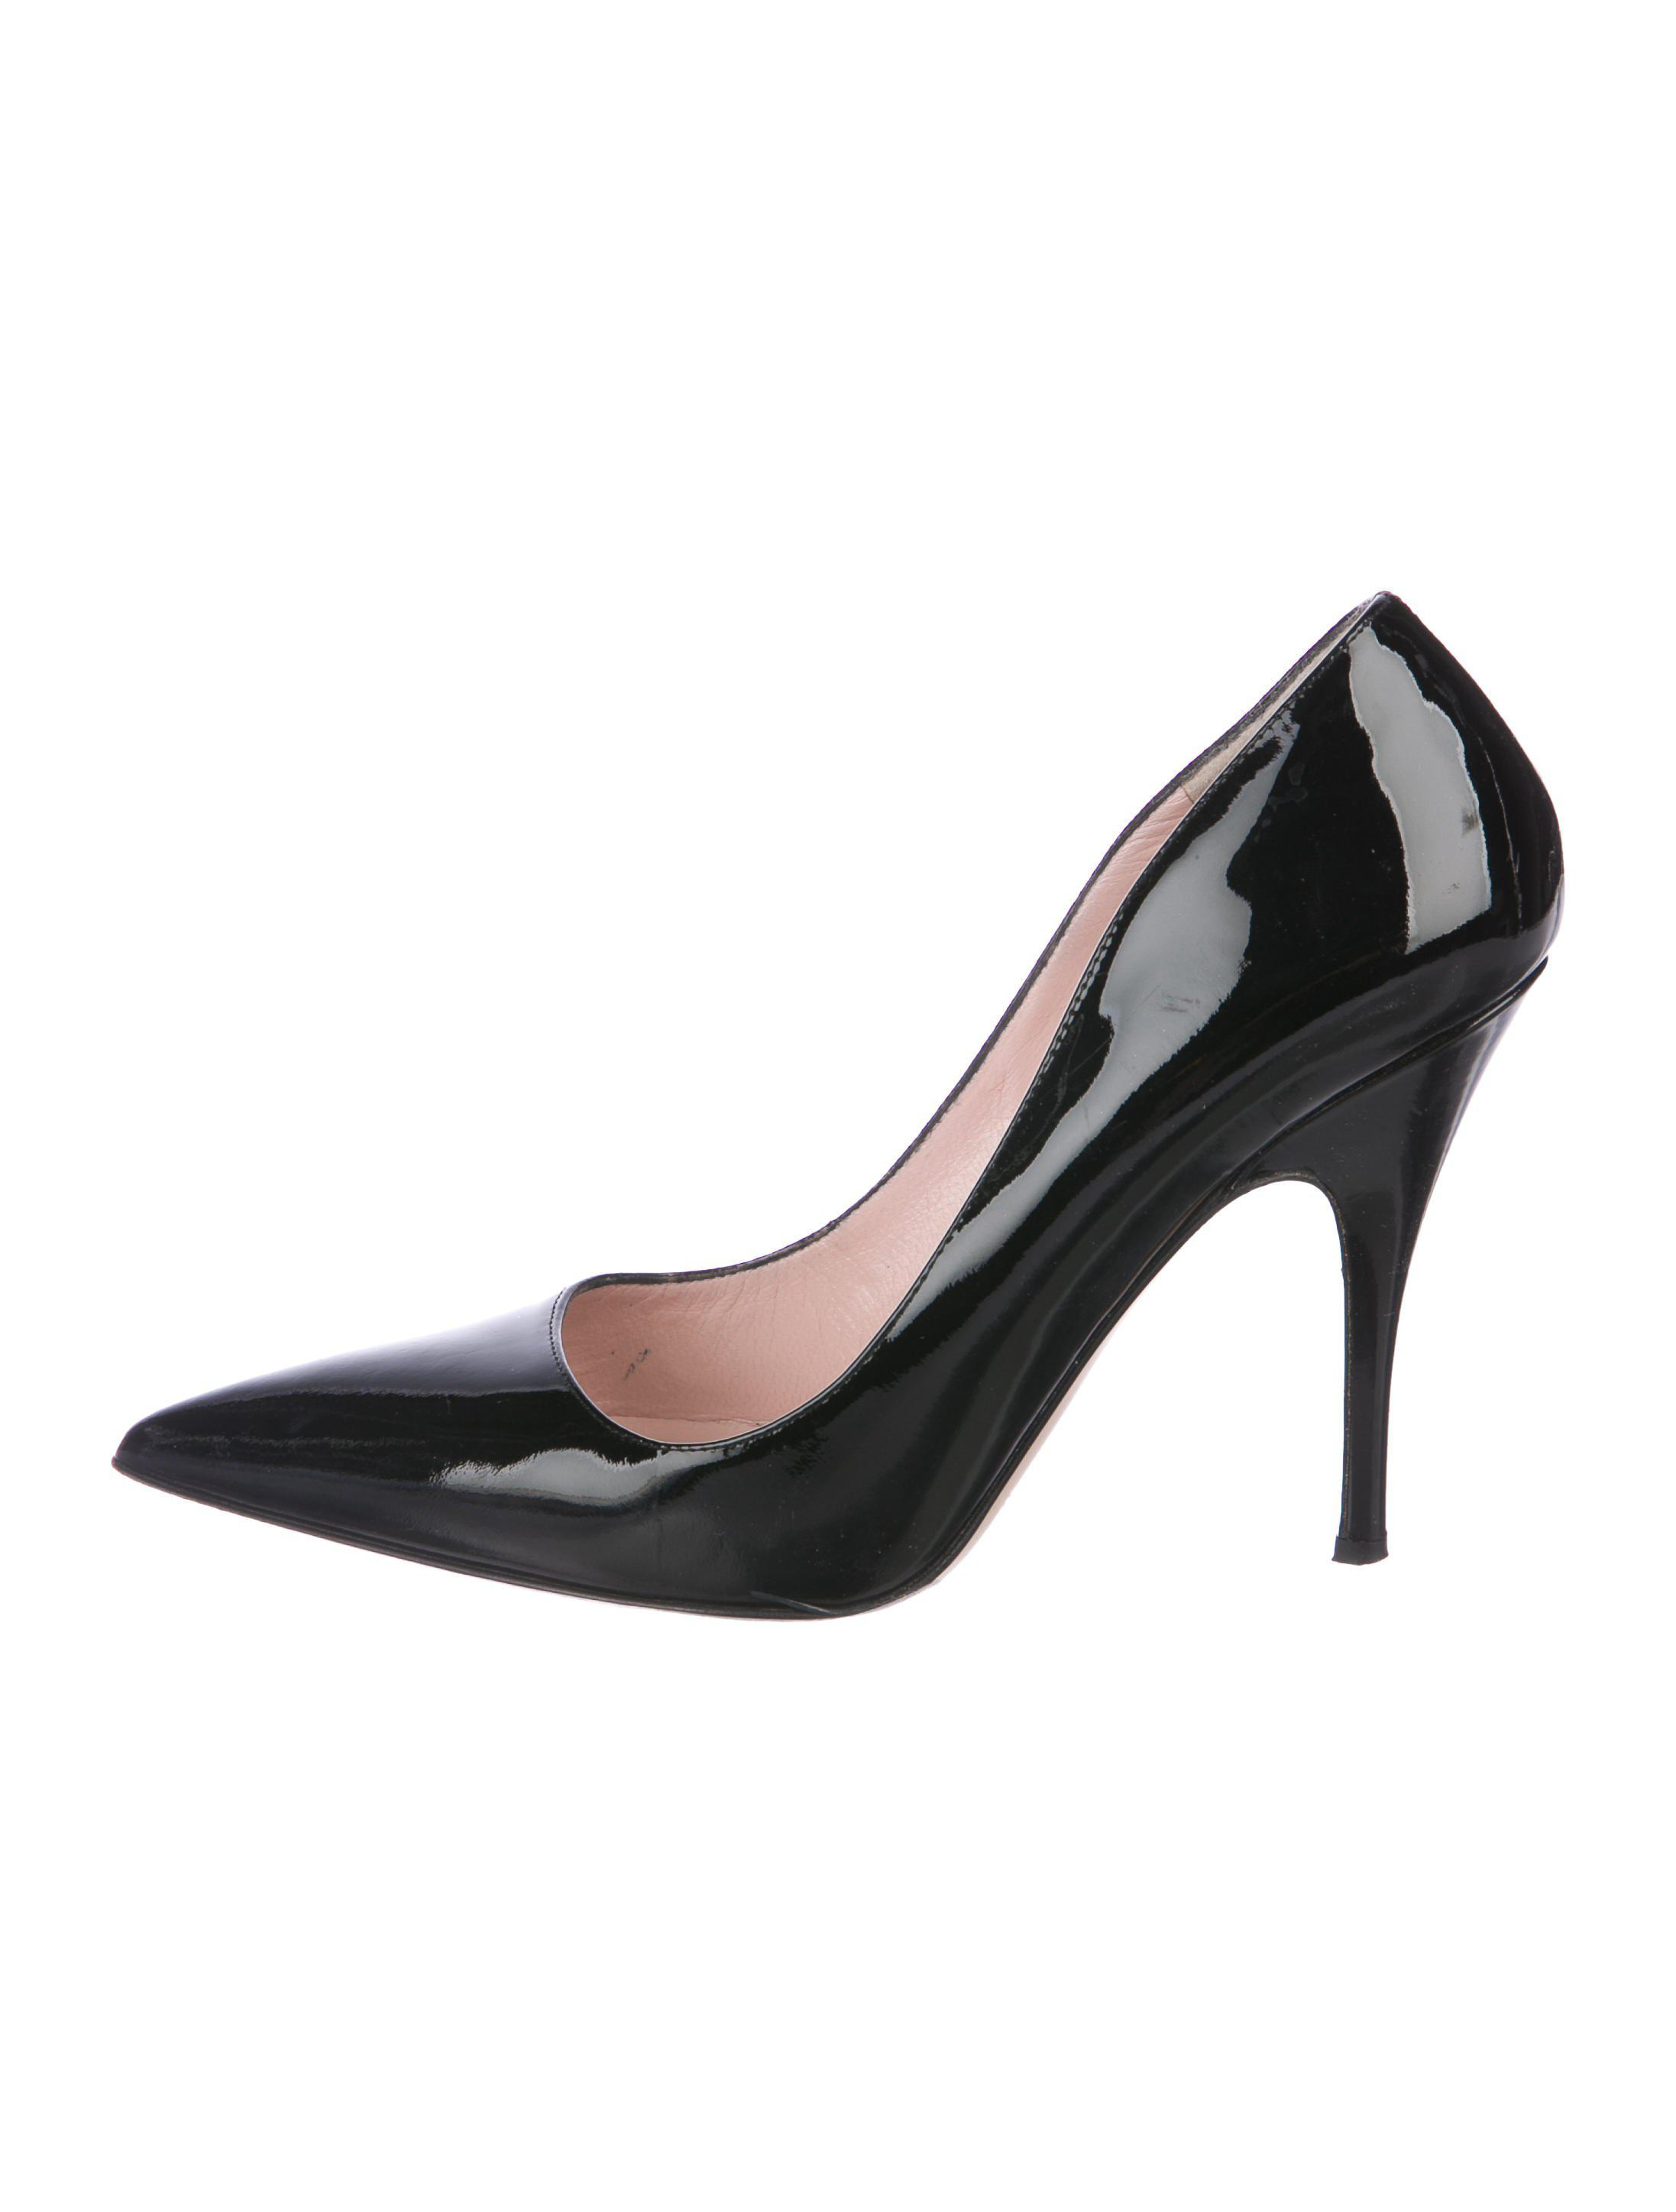 307e518ca88e Lyst - Kate Spade Patent Leather Pointed-toe Pumps in Black